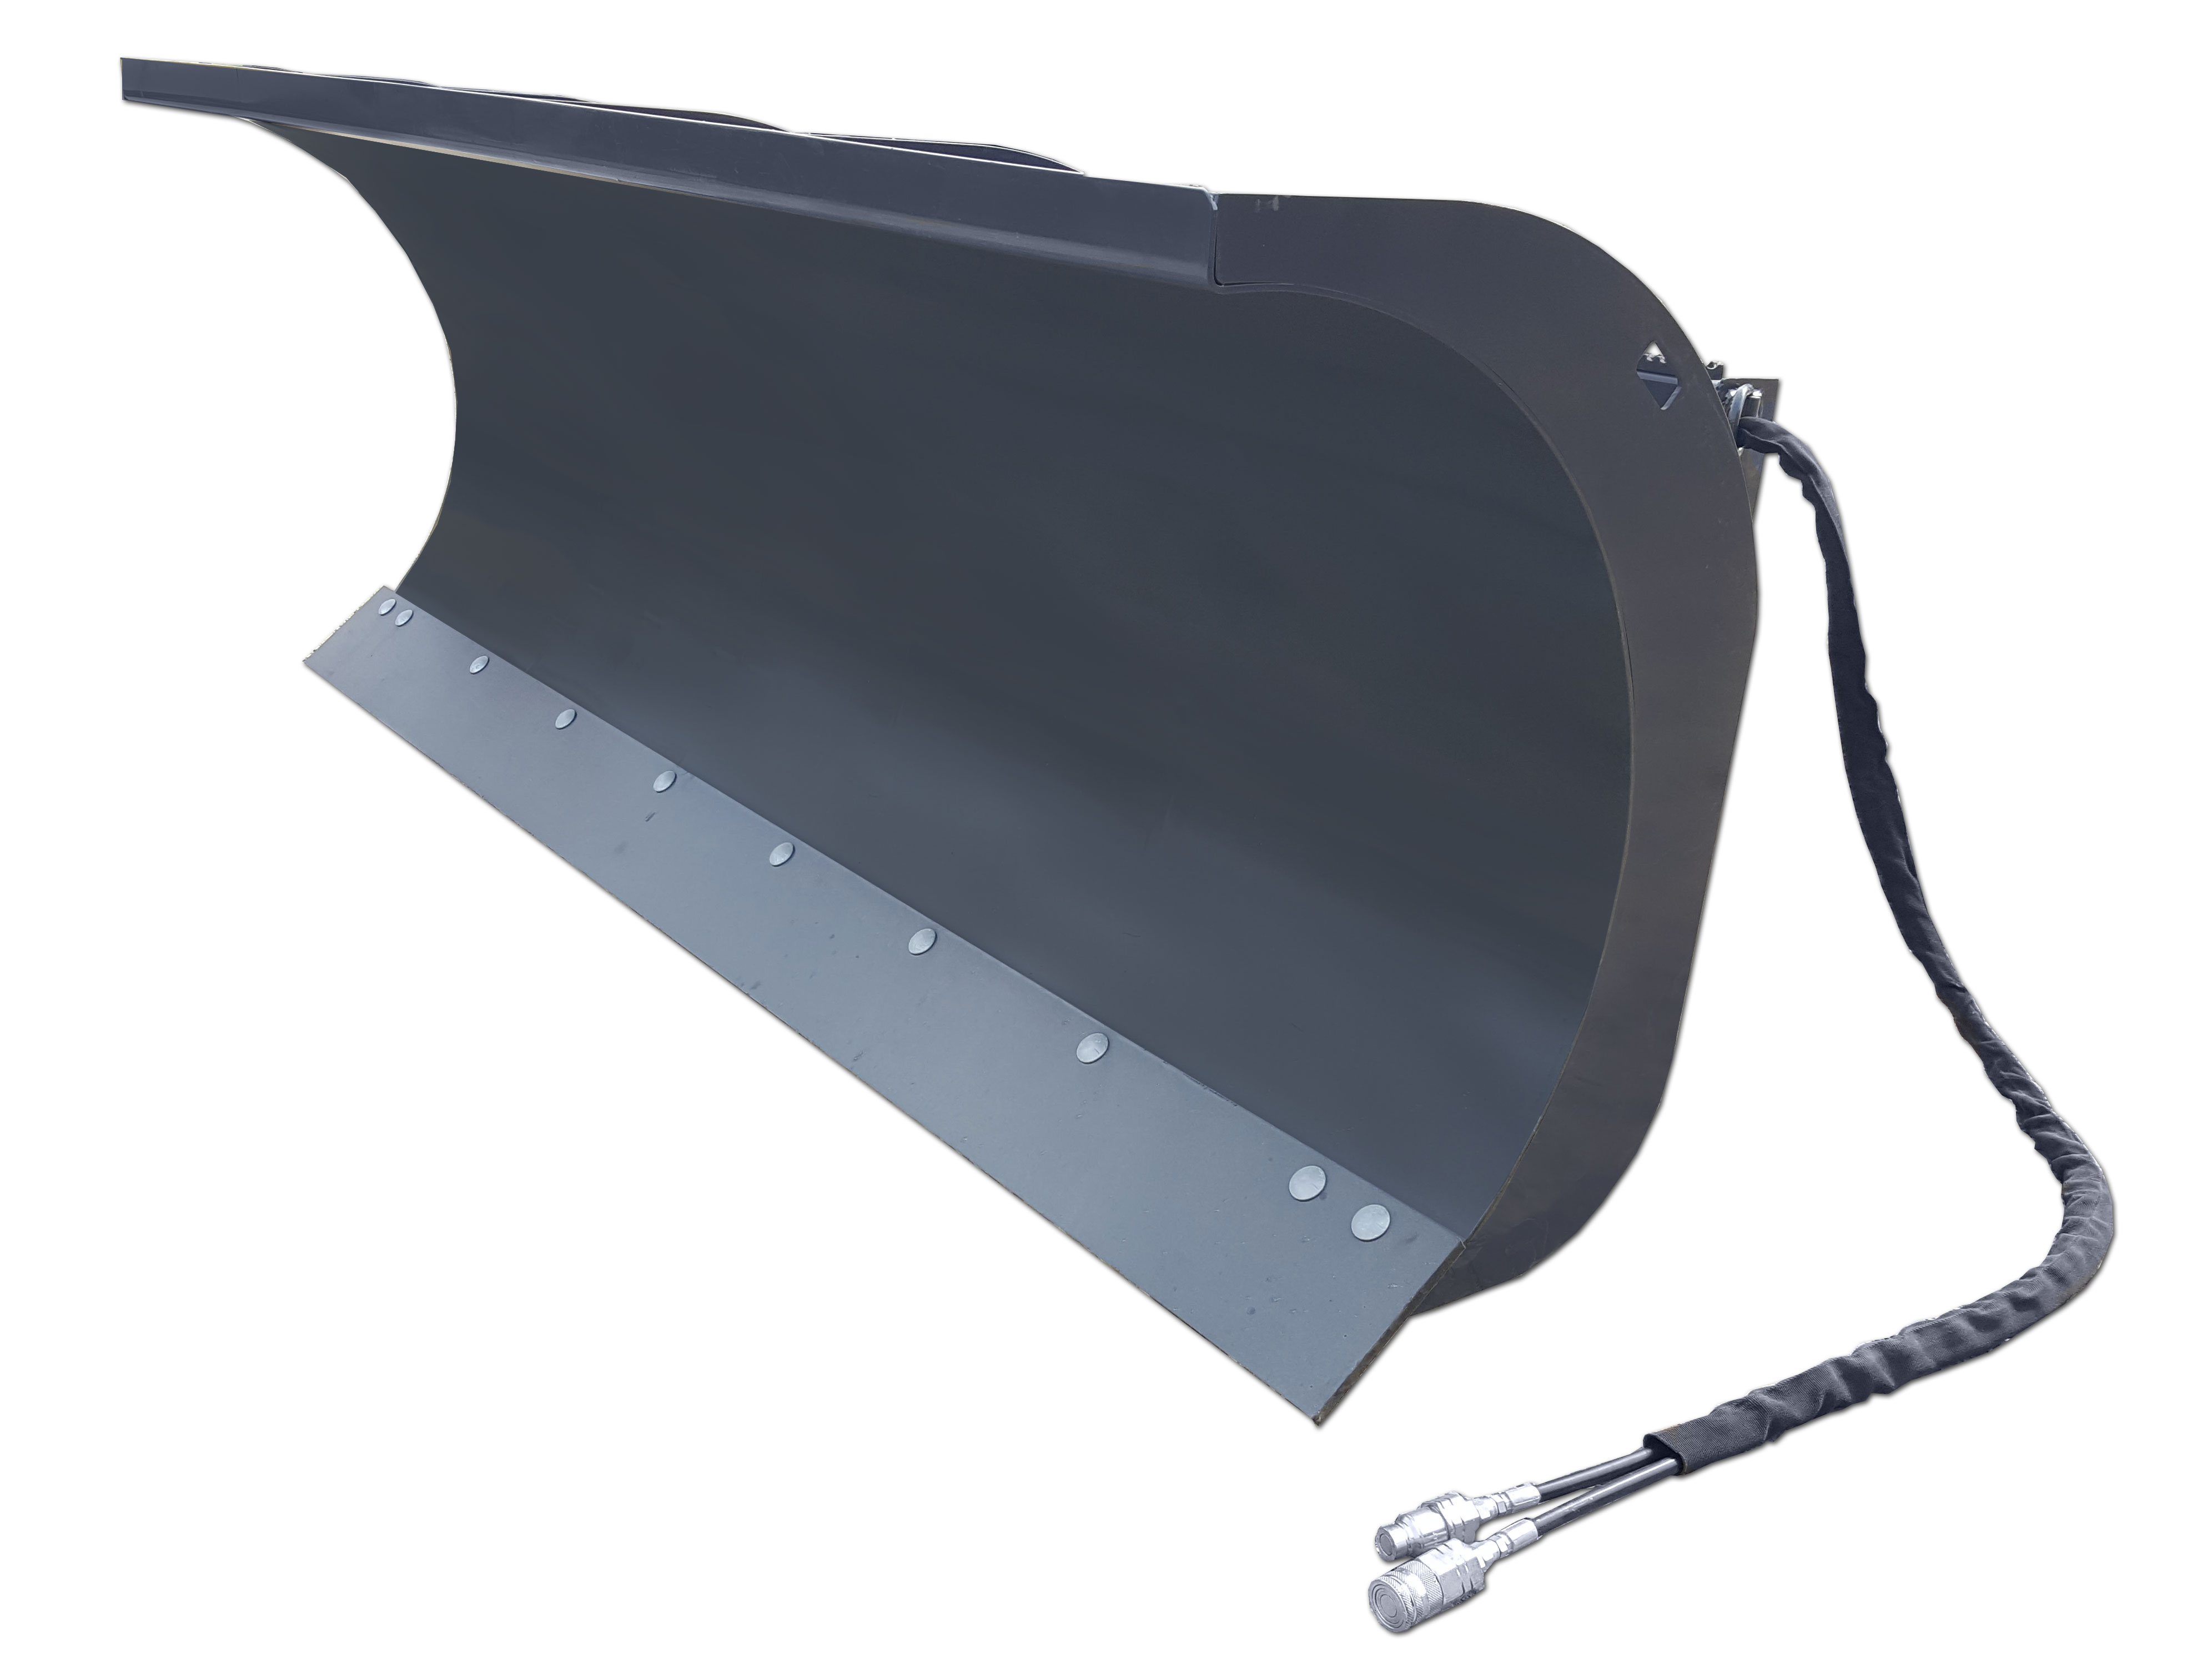 X-treme Skid Steer Snow Plow – By CID X-treme Attachments